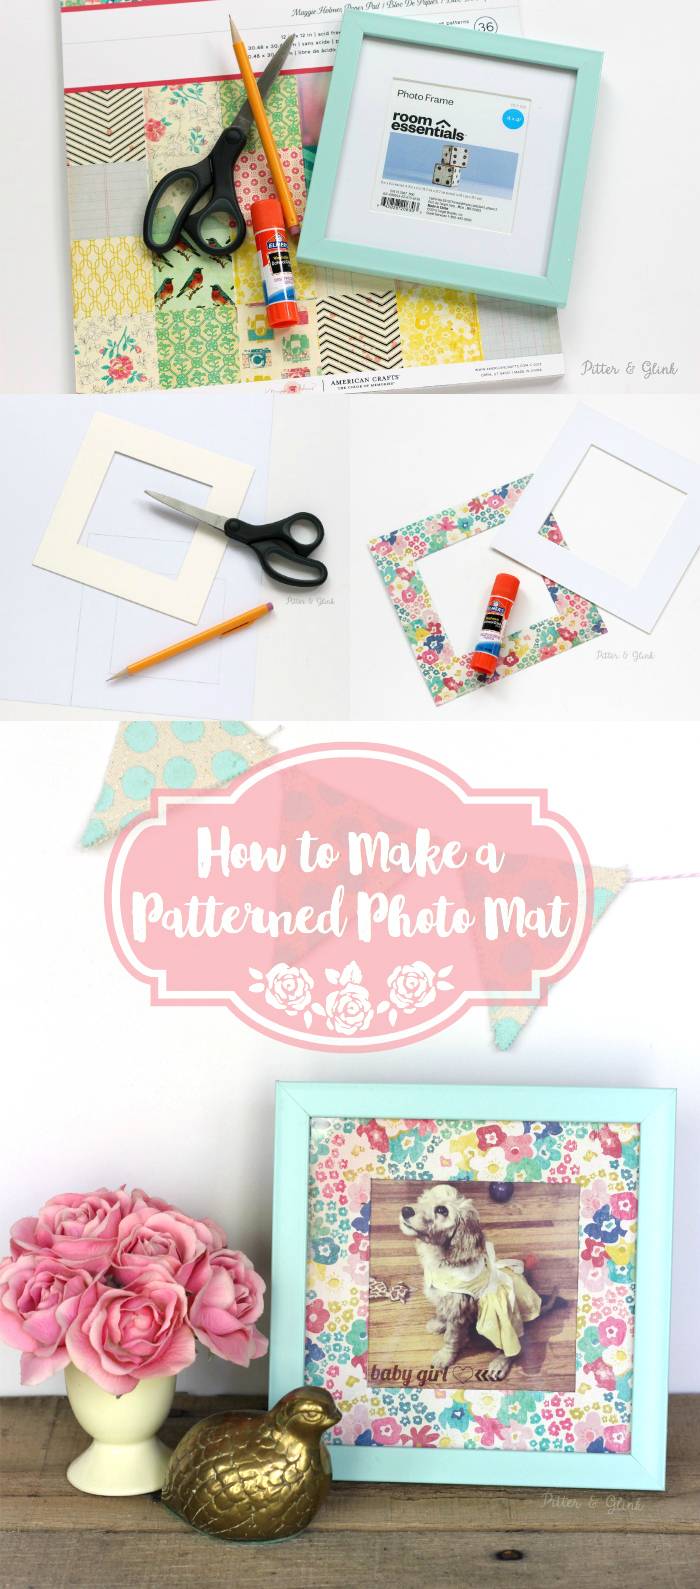 How to Make a Plain Photo Mat Pop Using Scrapbook Paper. www.pitterandglink.com